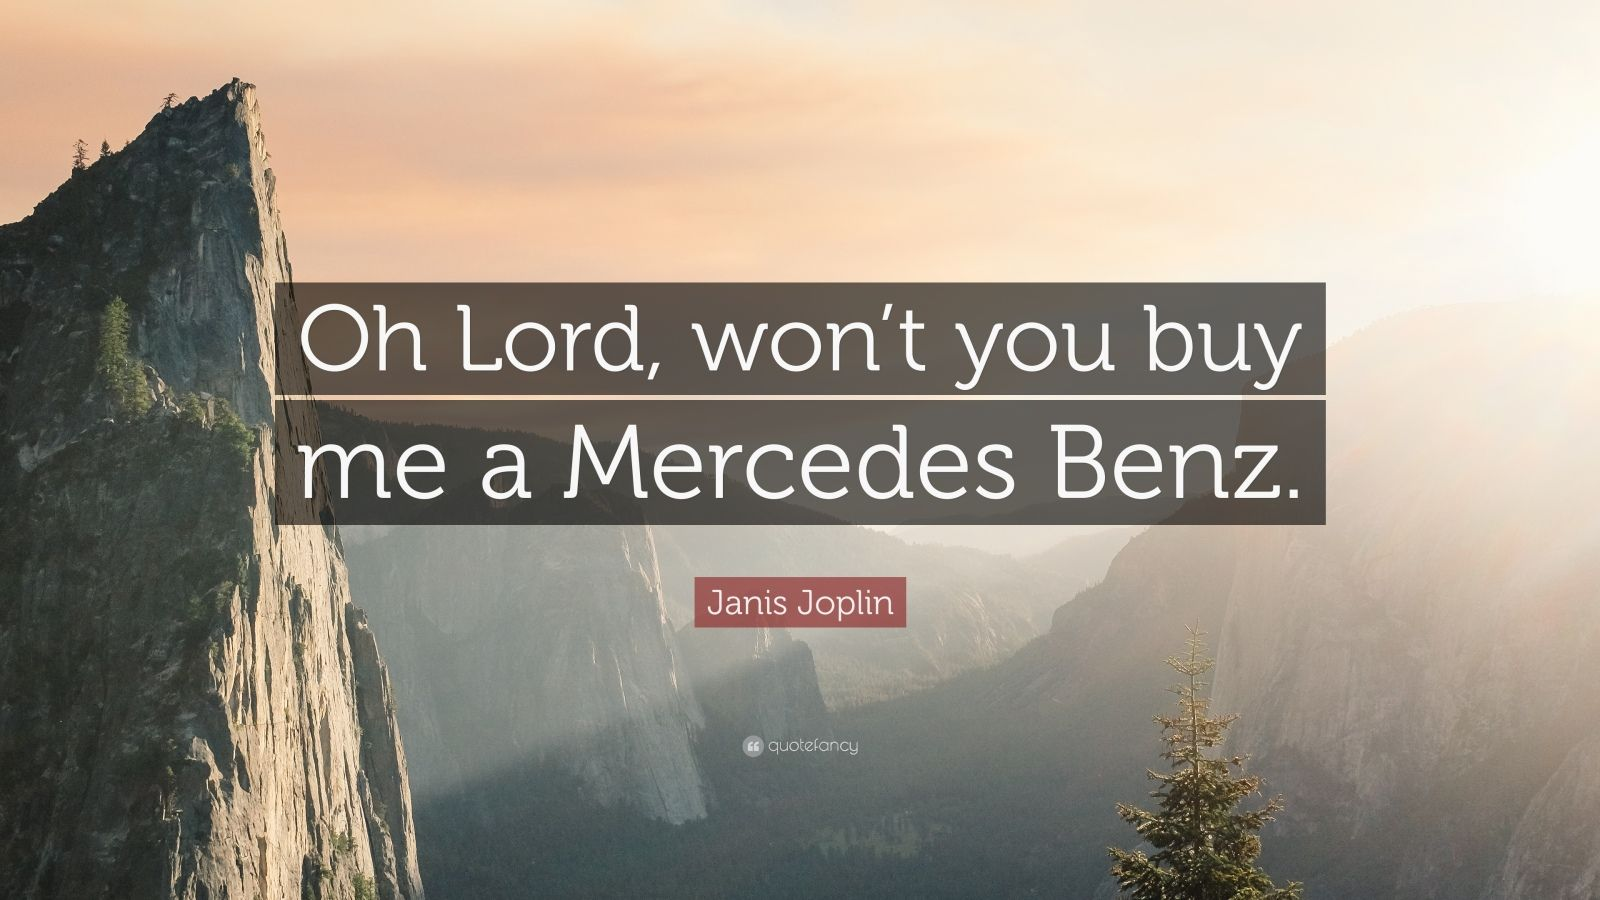 Janis joplin quotes 64 wallpapers quotefancy for Lord won t you buy me a mercedes benz